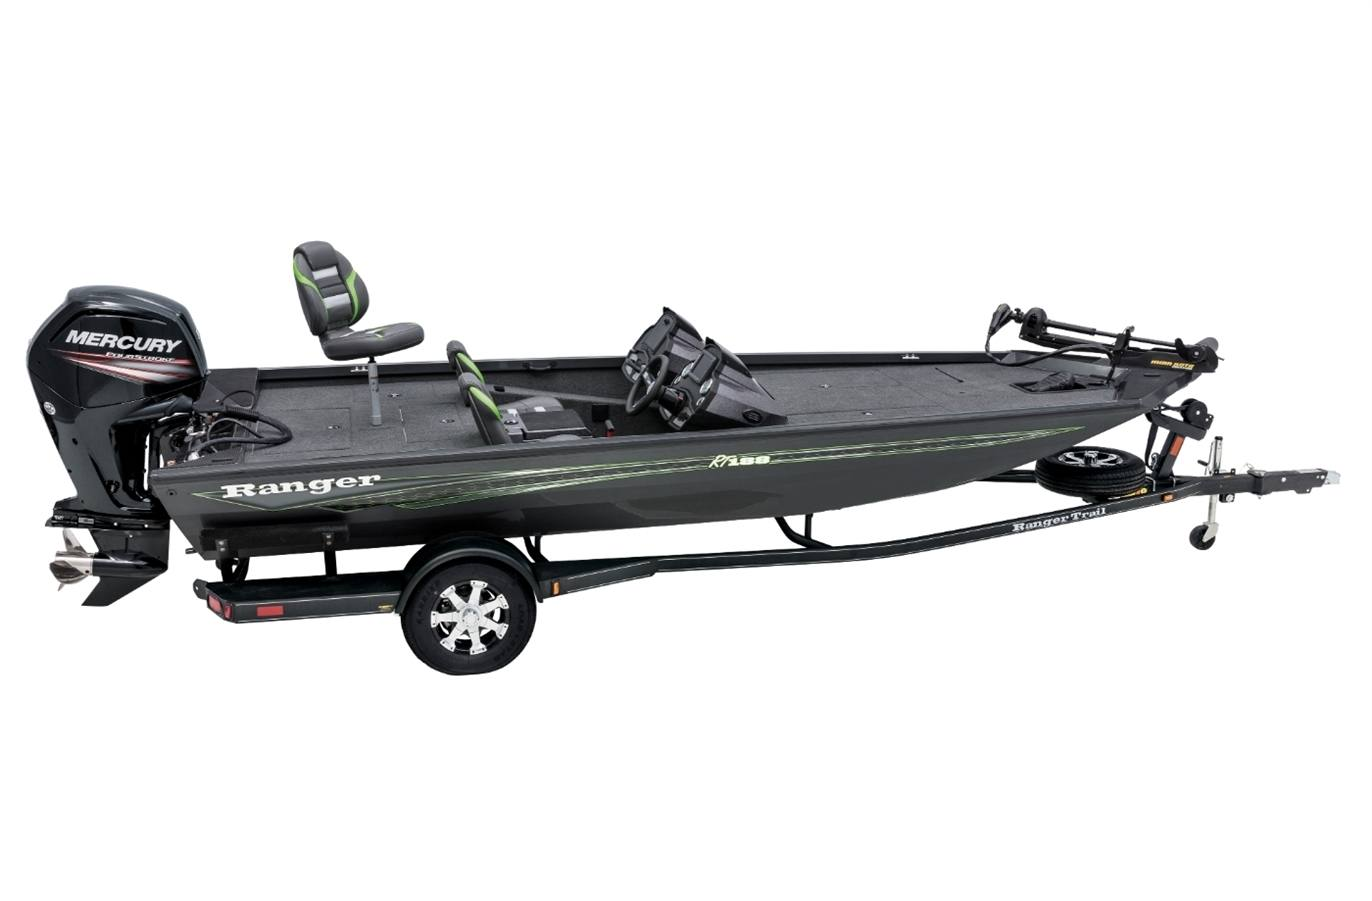 2019 Ranger RT188 for sale in Ramsey, MN  Power Lodge